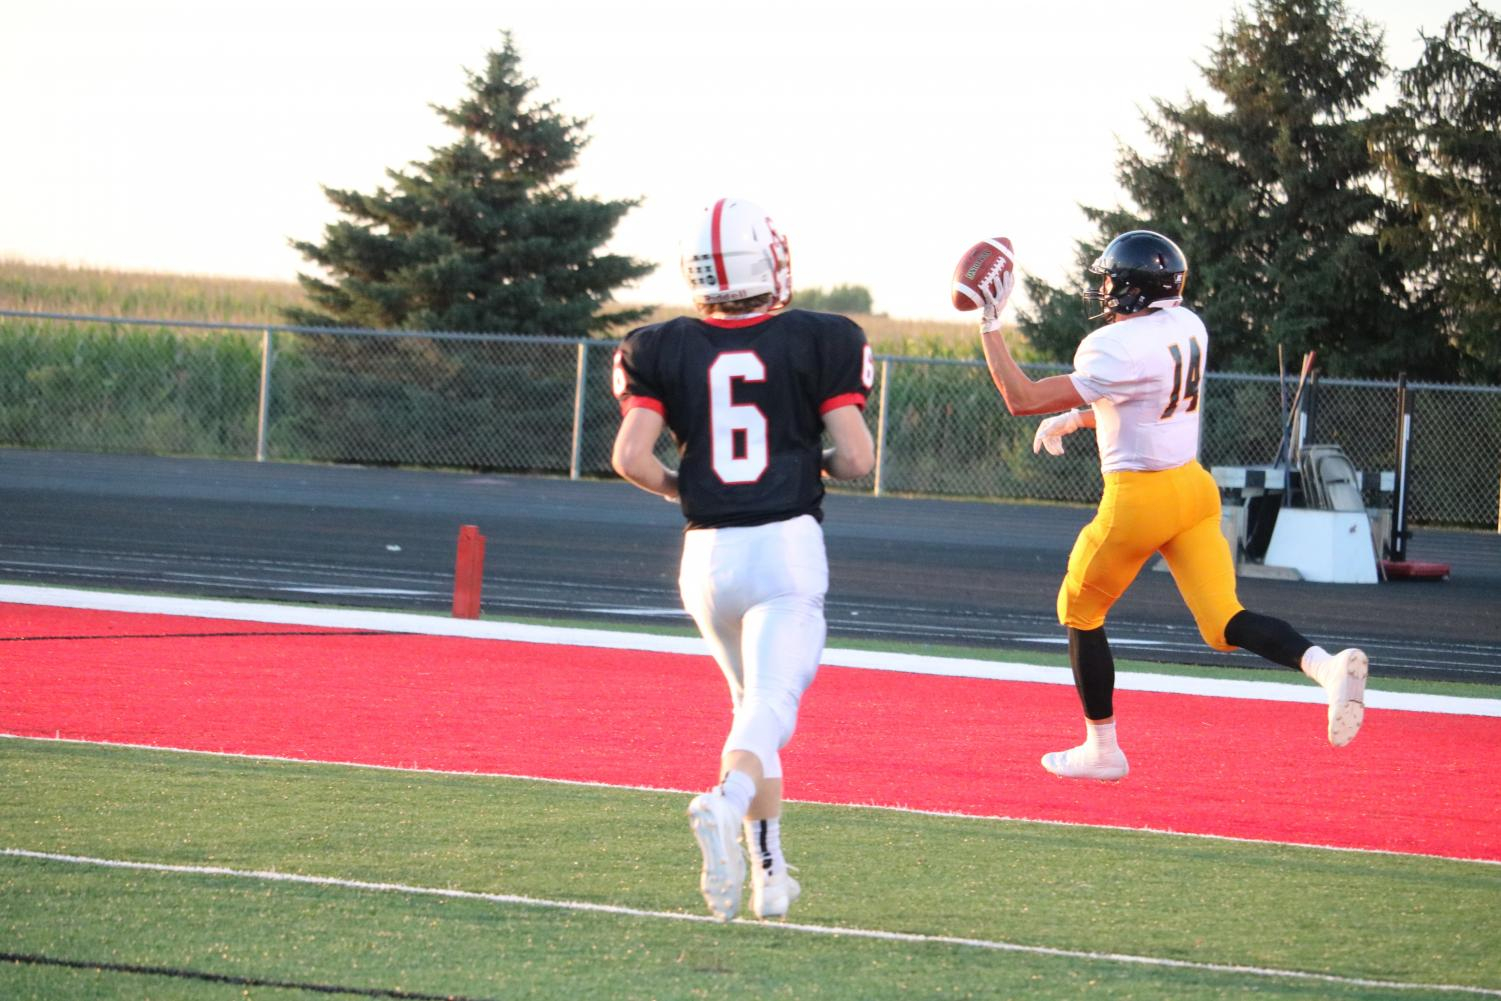 Senior Tyler Moen takes it to the house against Creston earlier in the season. Moen has played football all four years of high school